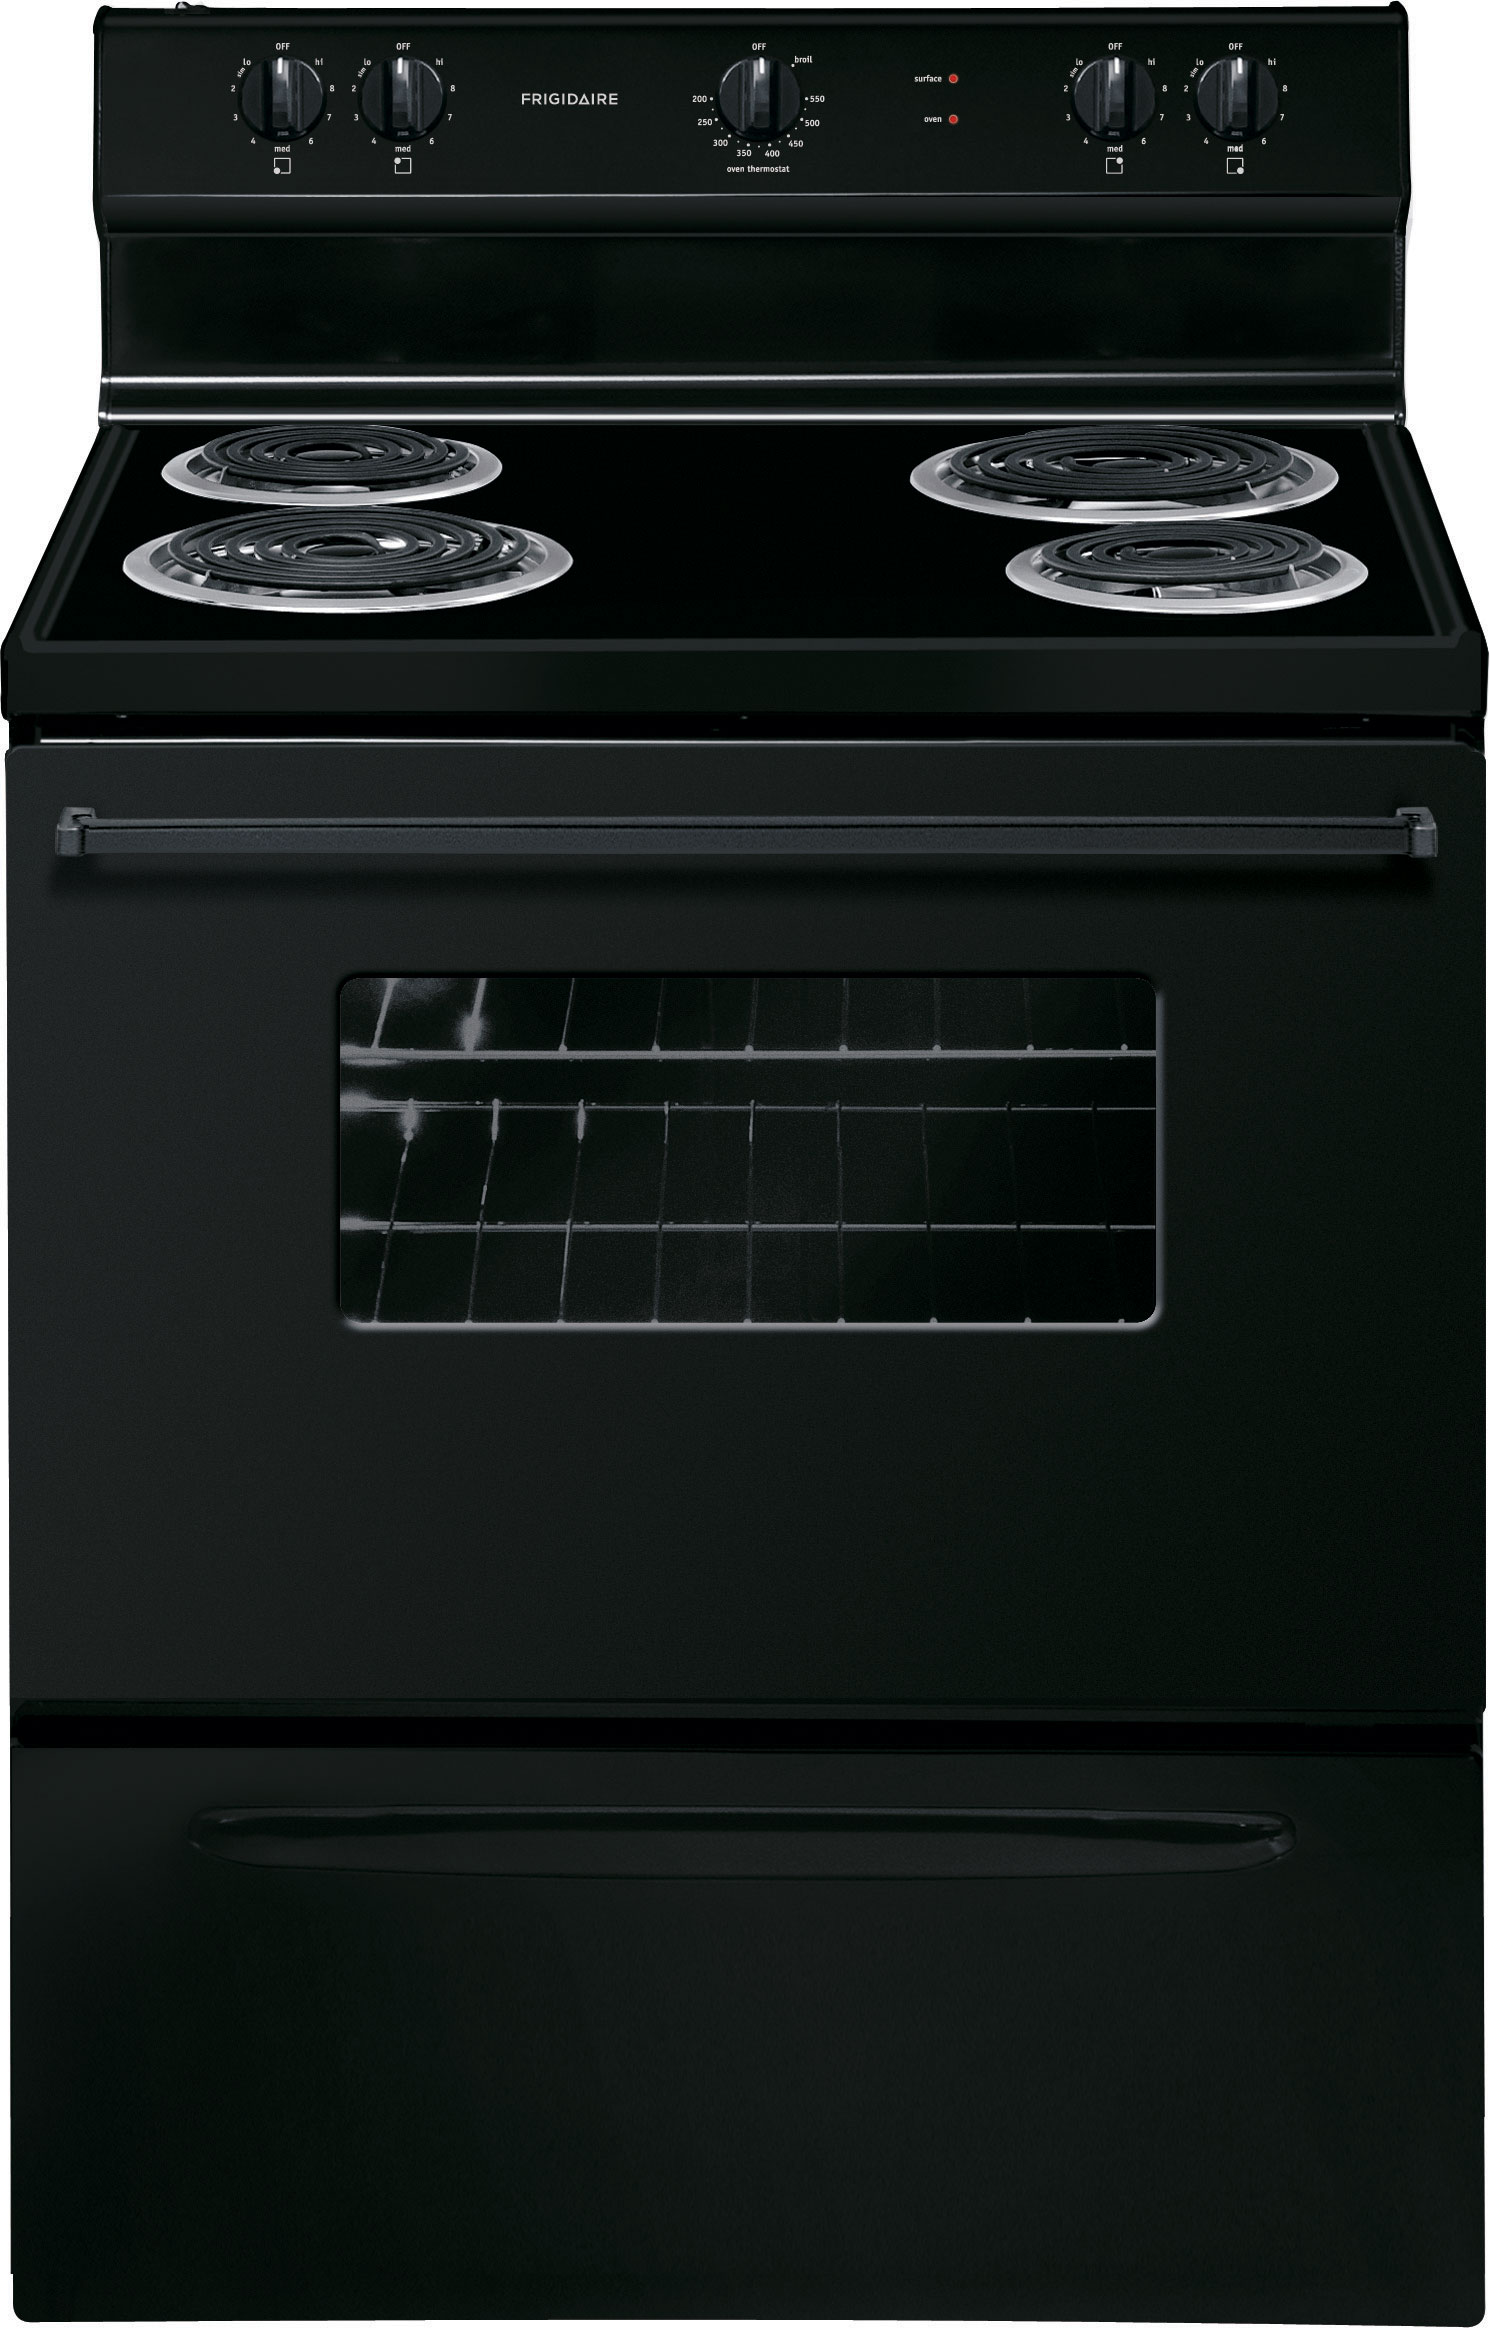 <D> FRIGIDAIRE FFEF3005MB RANGE 30 4.2CF ELECTRIC MANUAL CLEAN COIL TOP-6/8-WINDOW-STORAGE DRAWER BLACK